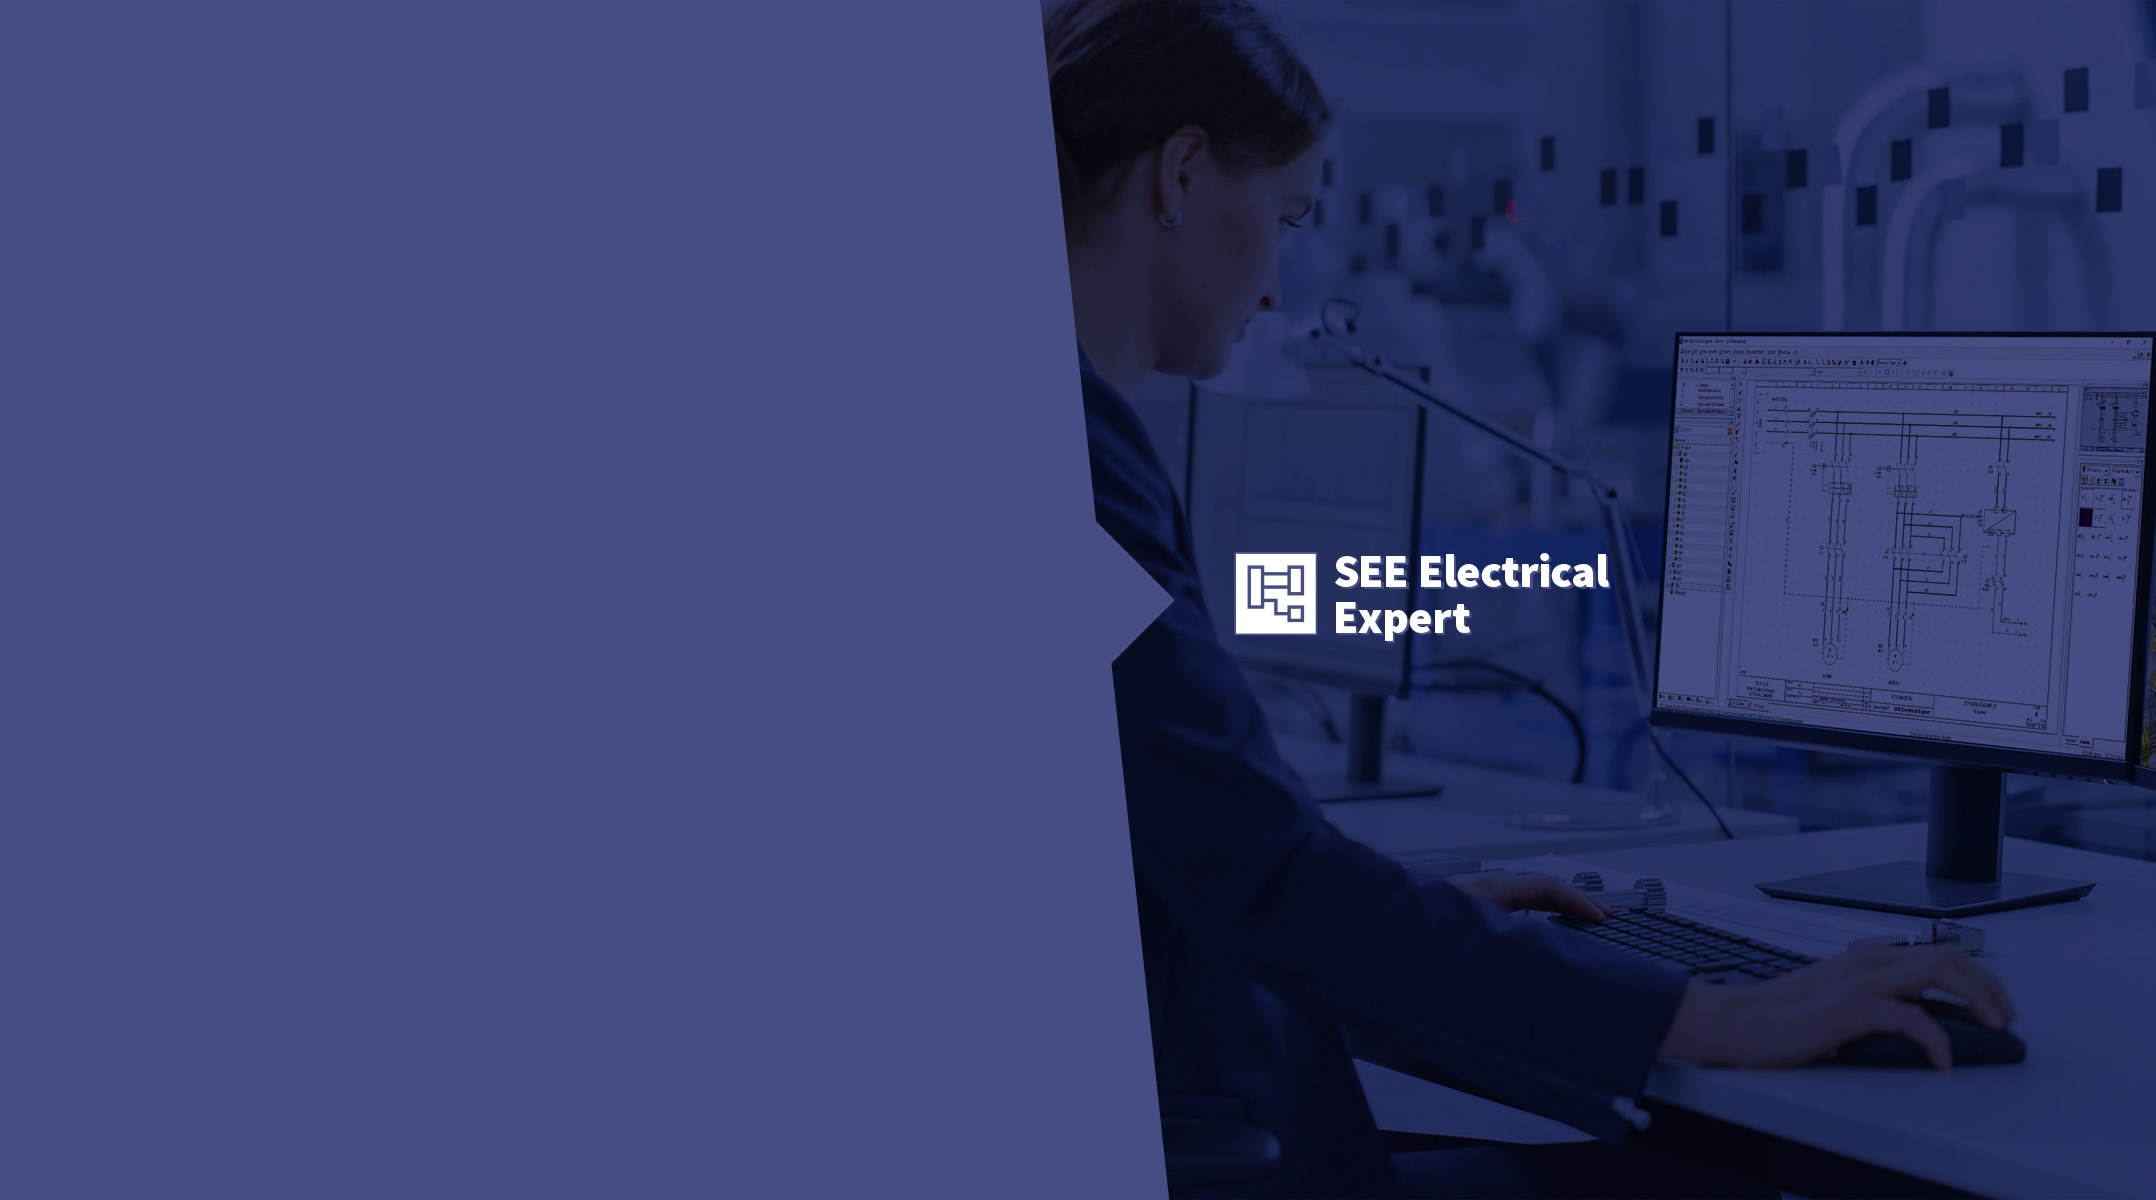 SEE Electrical Expert visual